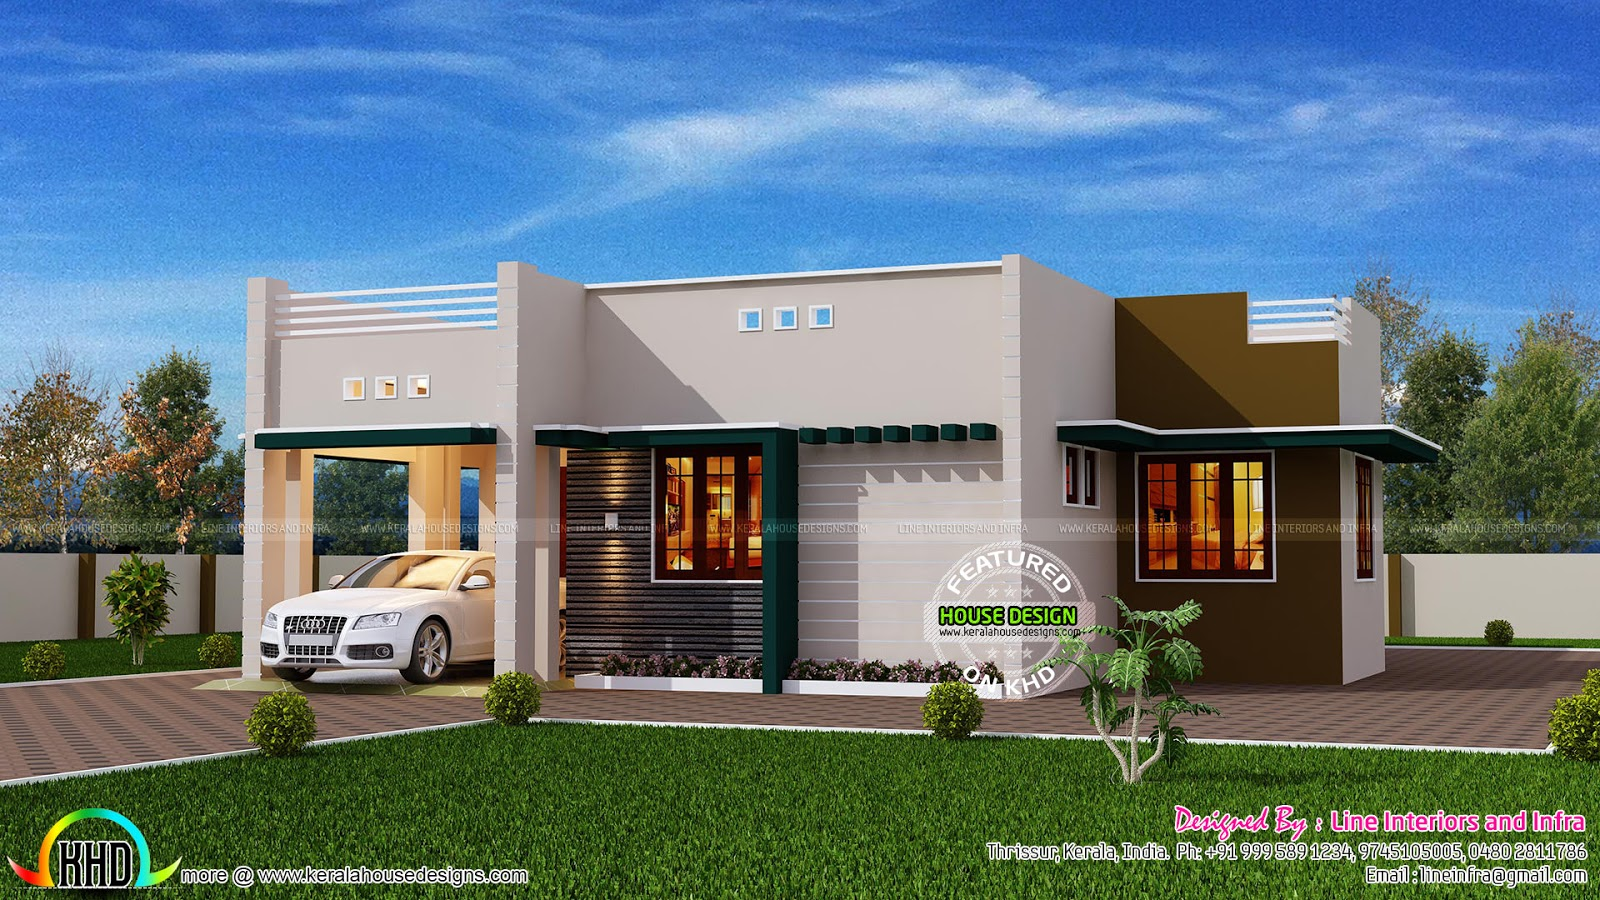 1500 square foot house kerala home design and floor plans for 1500 sq ft house plans kerala